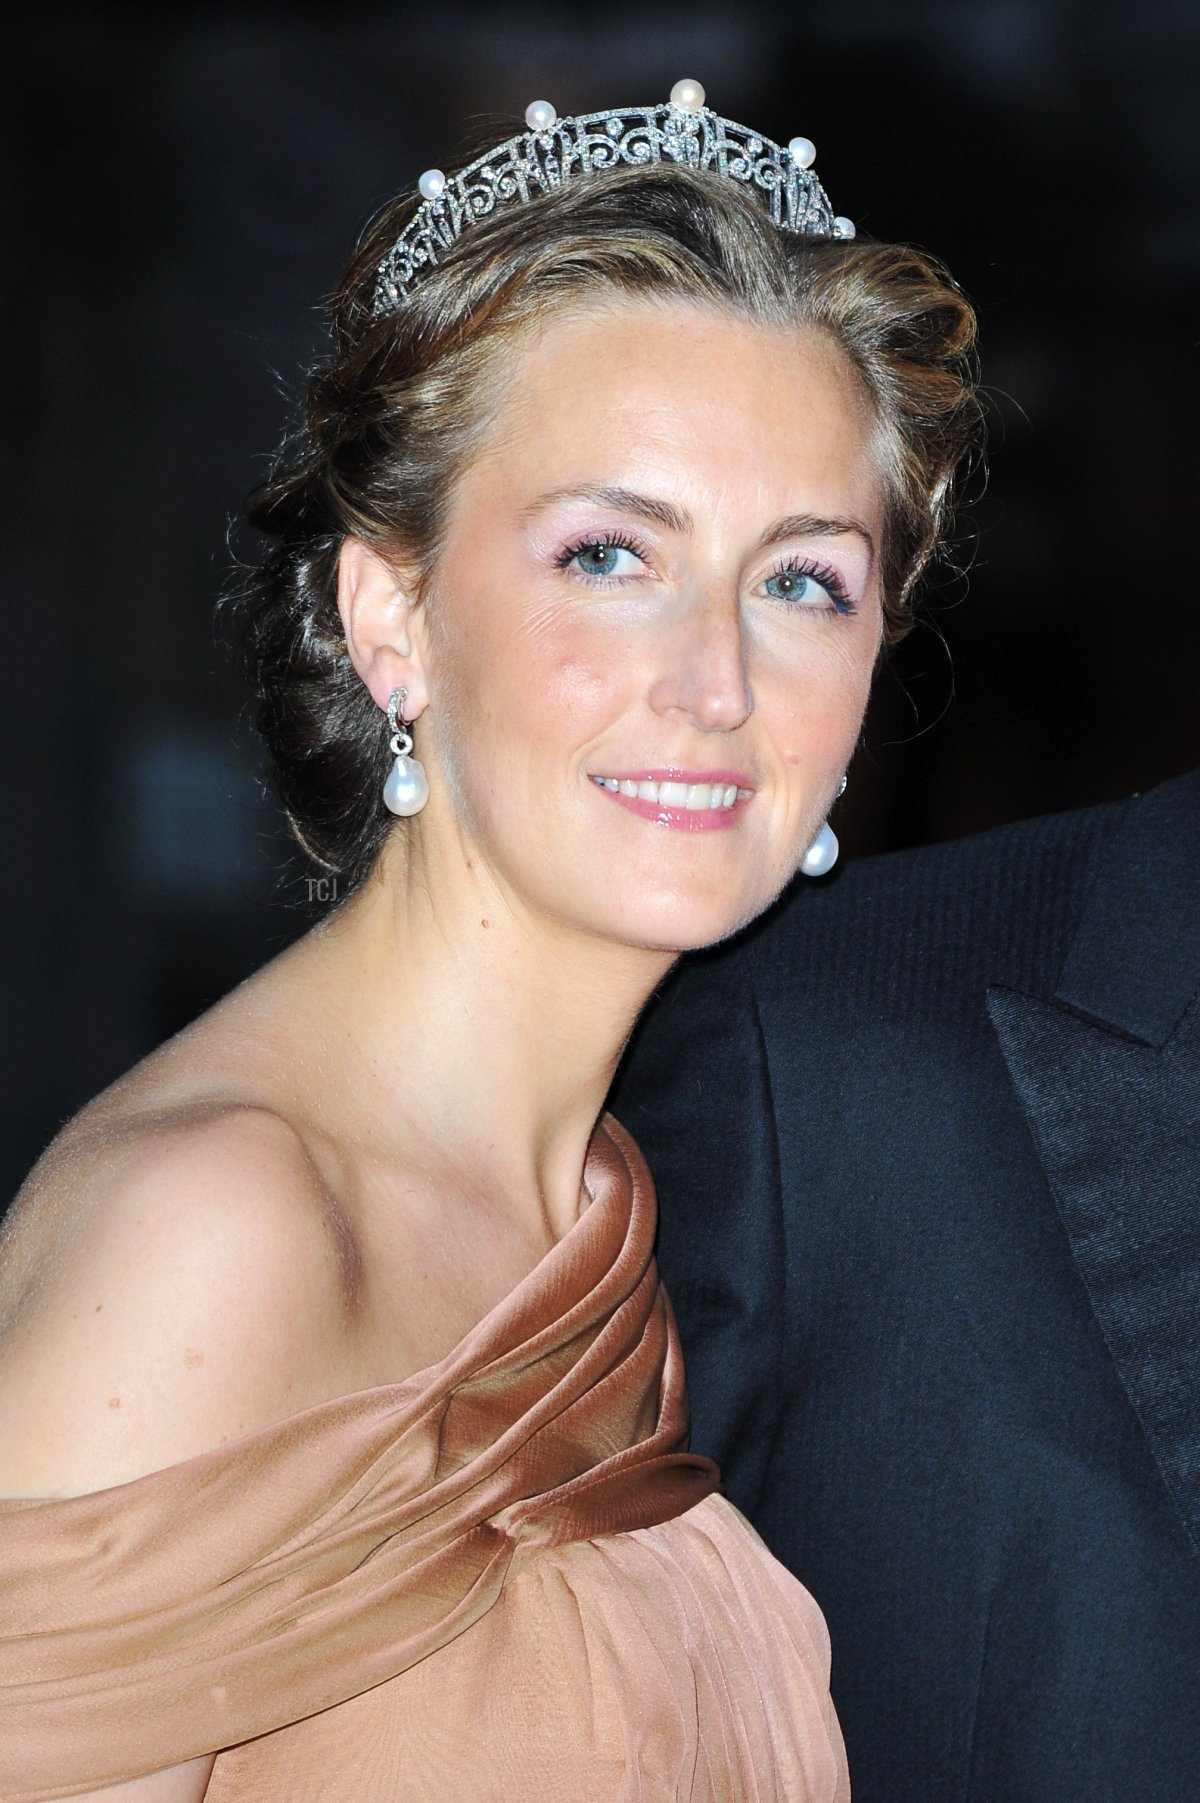 Princess Claire of Belgium attends a dinner at Opera terraces after the religious wedding ceremony on July 2, 2011 in Monaco